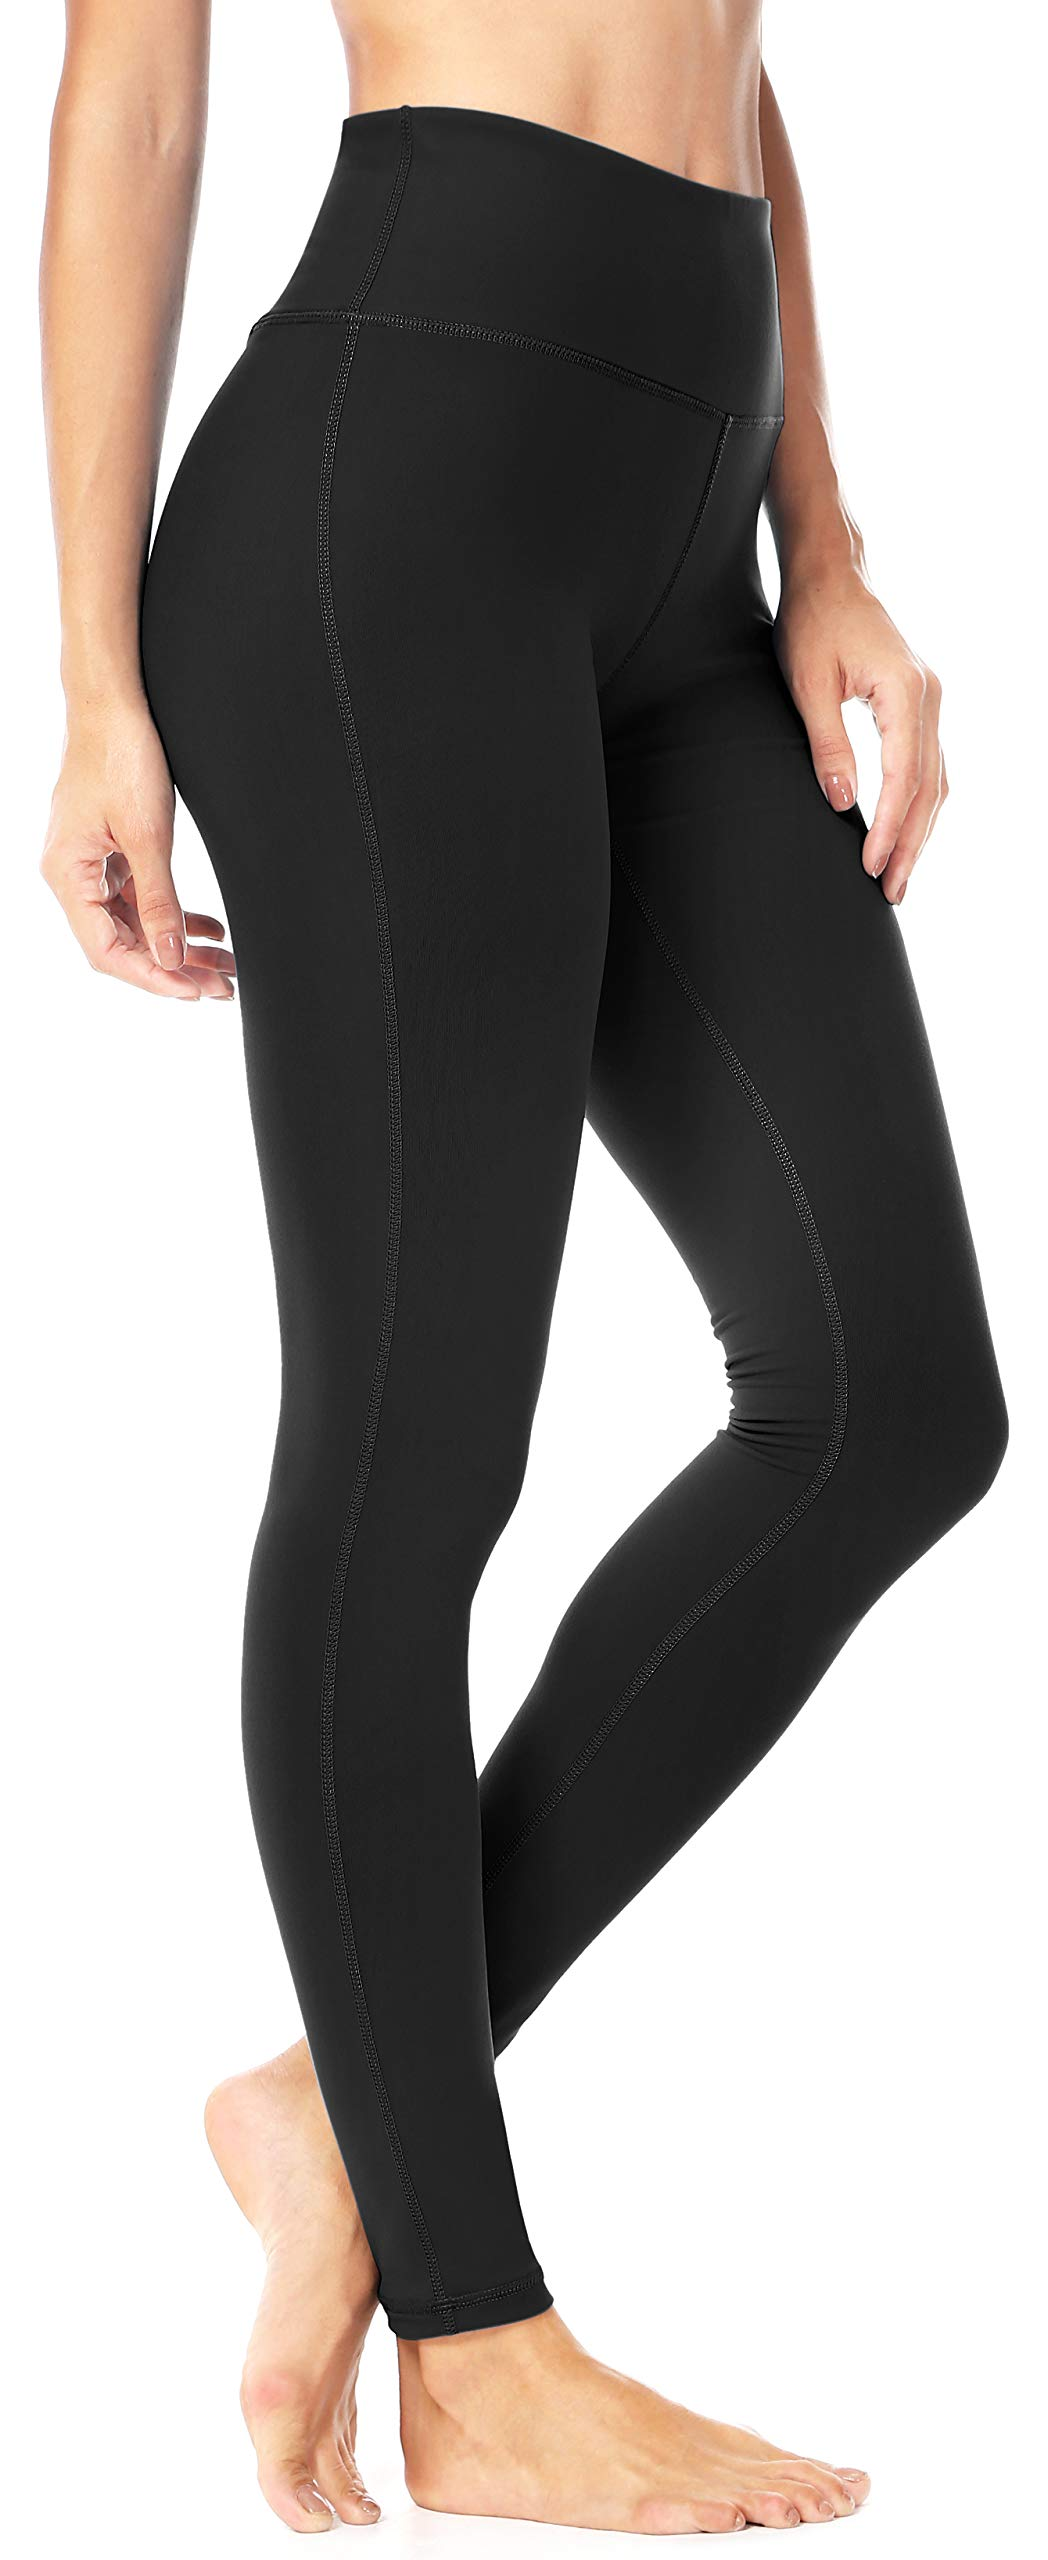 84a3f699b4a89 QUEENIEKE Women Solid Color Sports Mid Waist Yoga Running Leggings Tights  product image